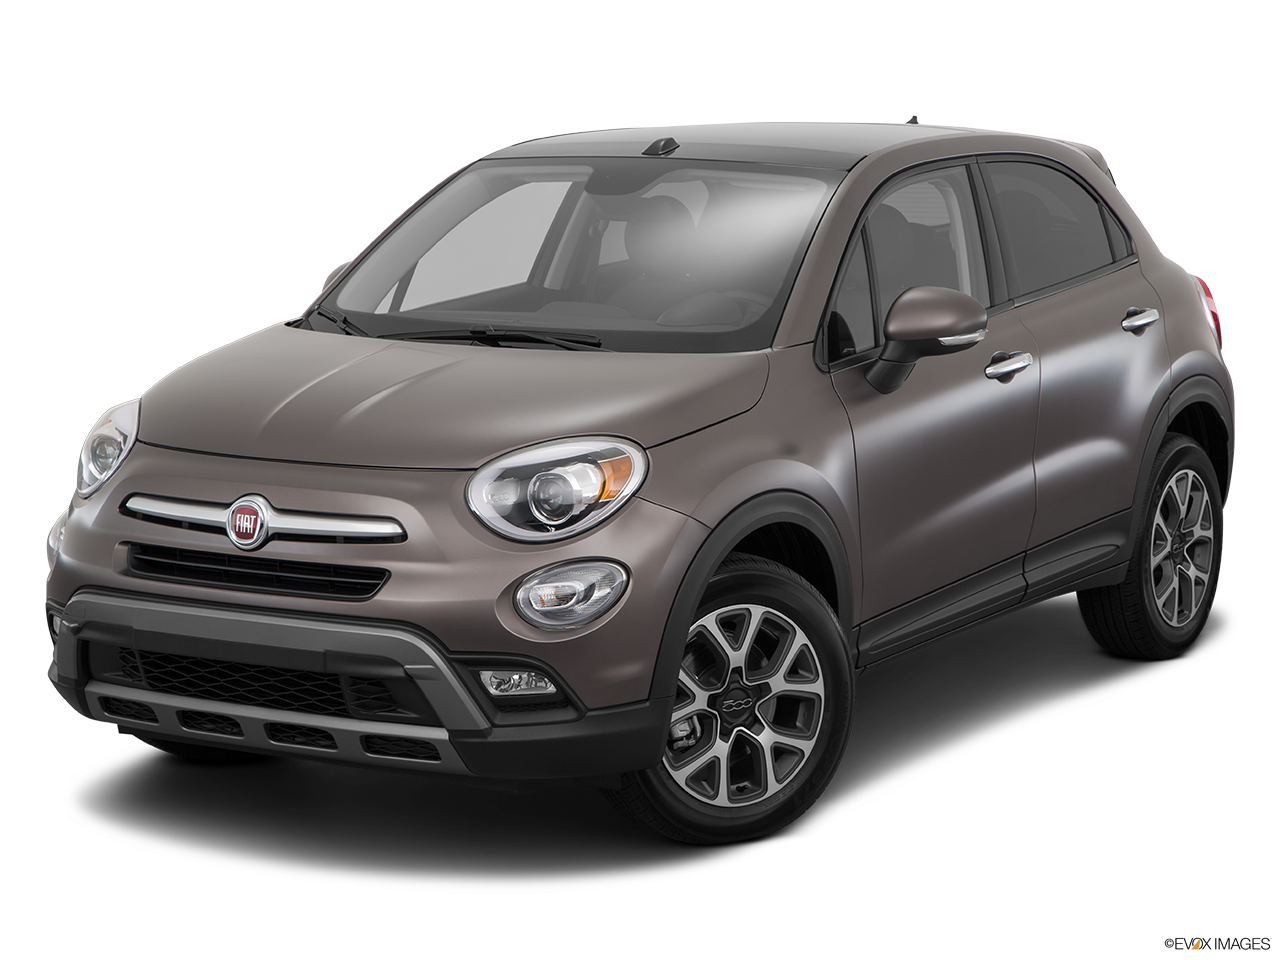 Test Drive A 2016 Fiat 500X at Arrigo FIAT West Palm Beach in West Palm Beach